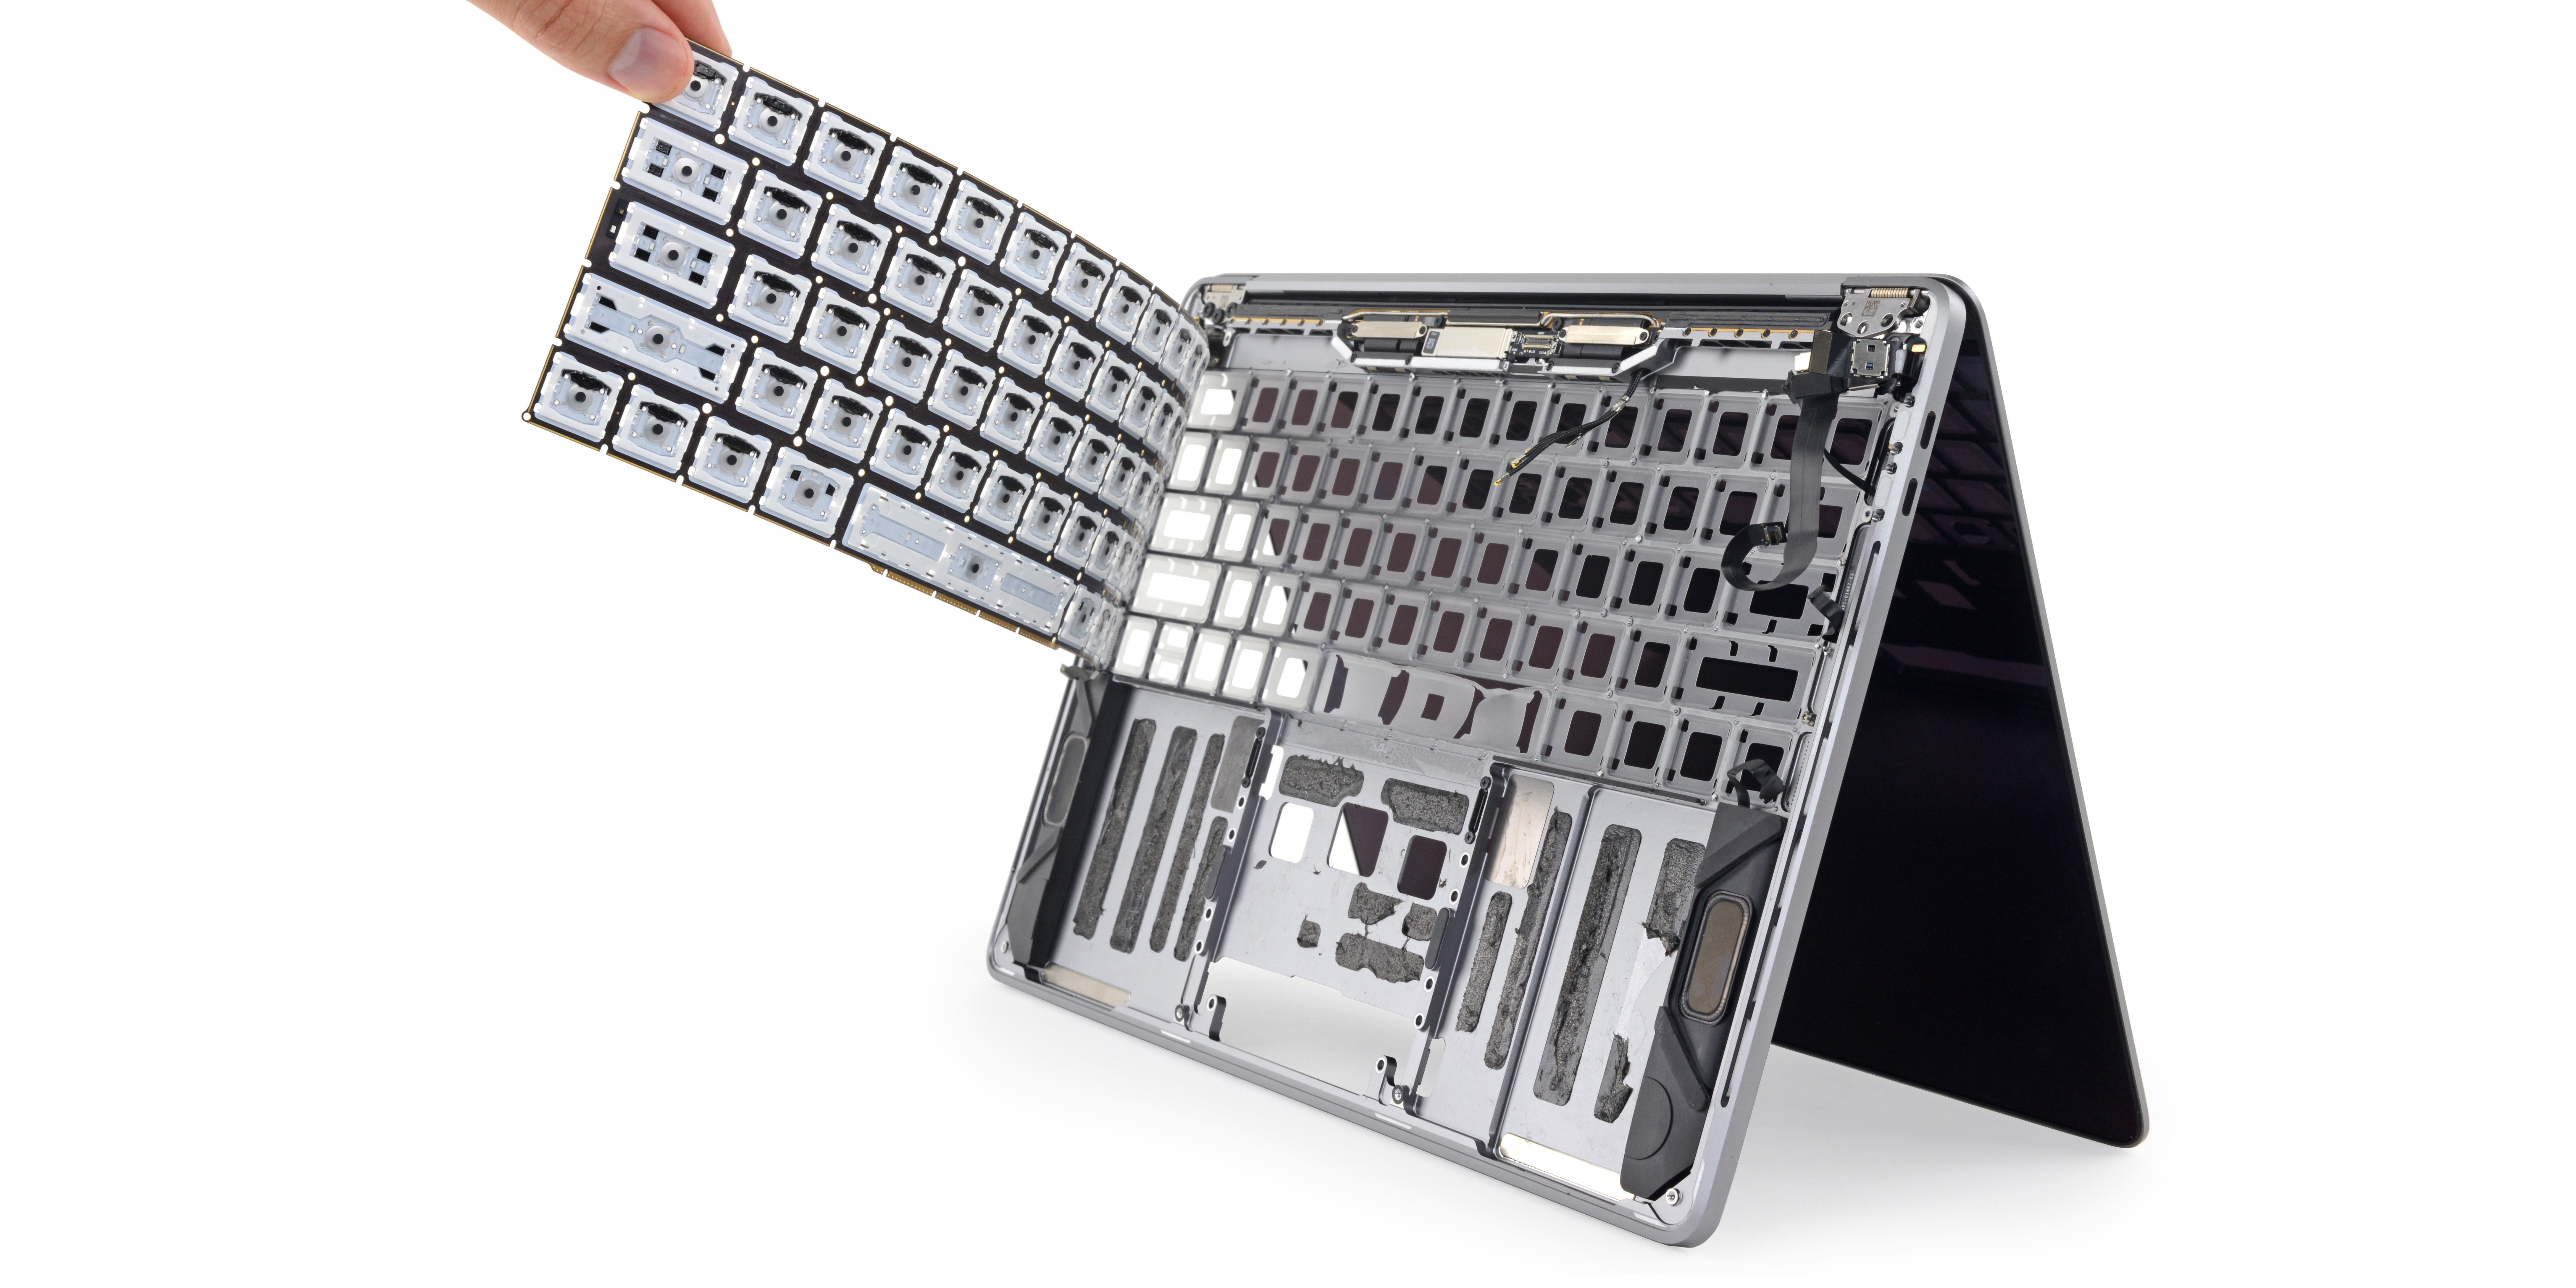 How to check MacBook and MacBook Pro keyboard repair or replacement eligibility